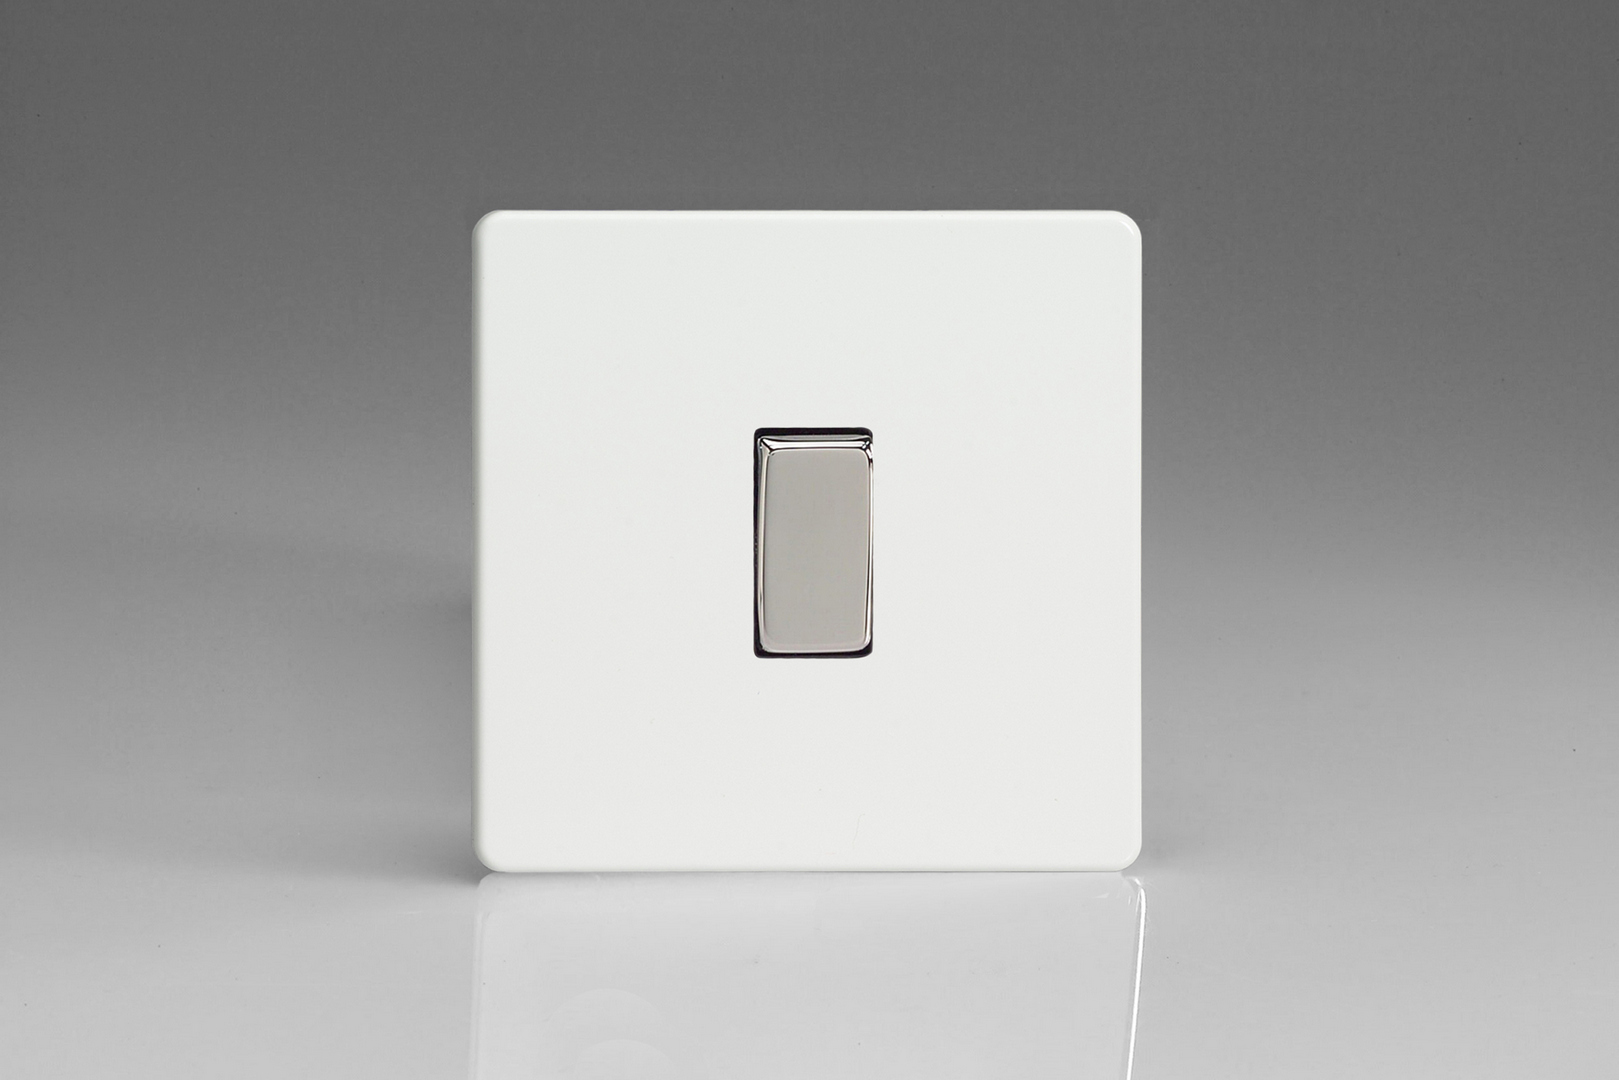 Premium White Impulse Switch